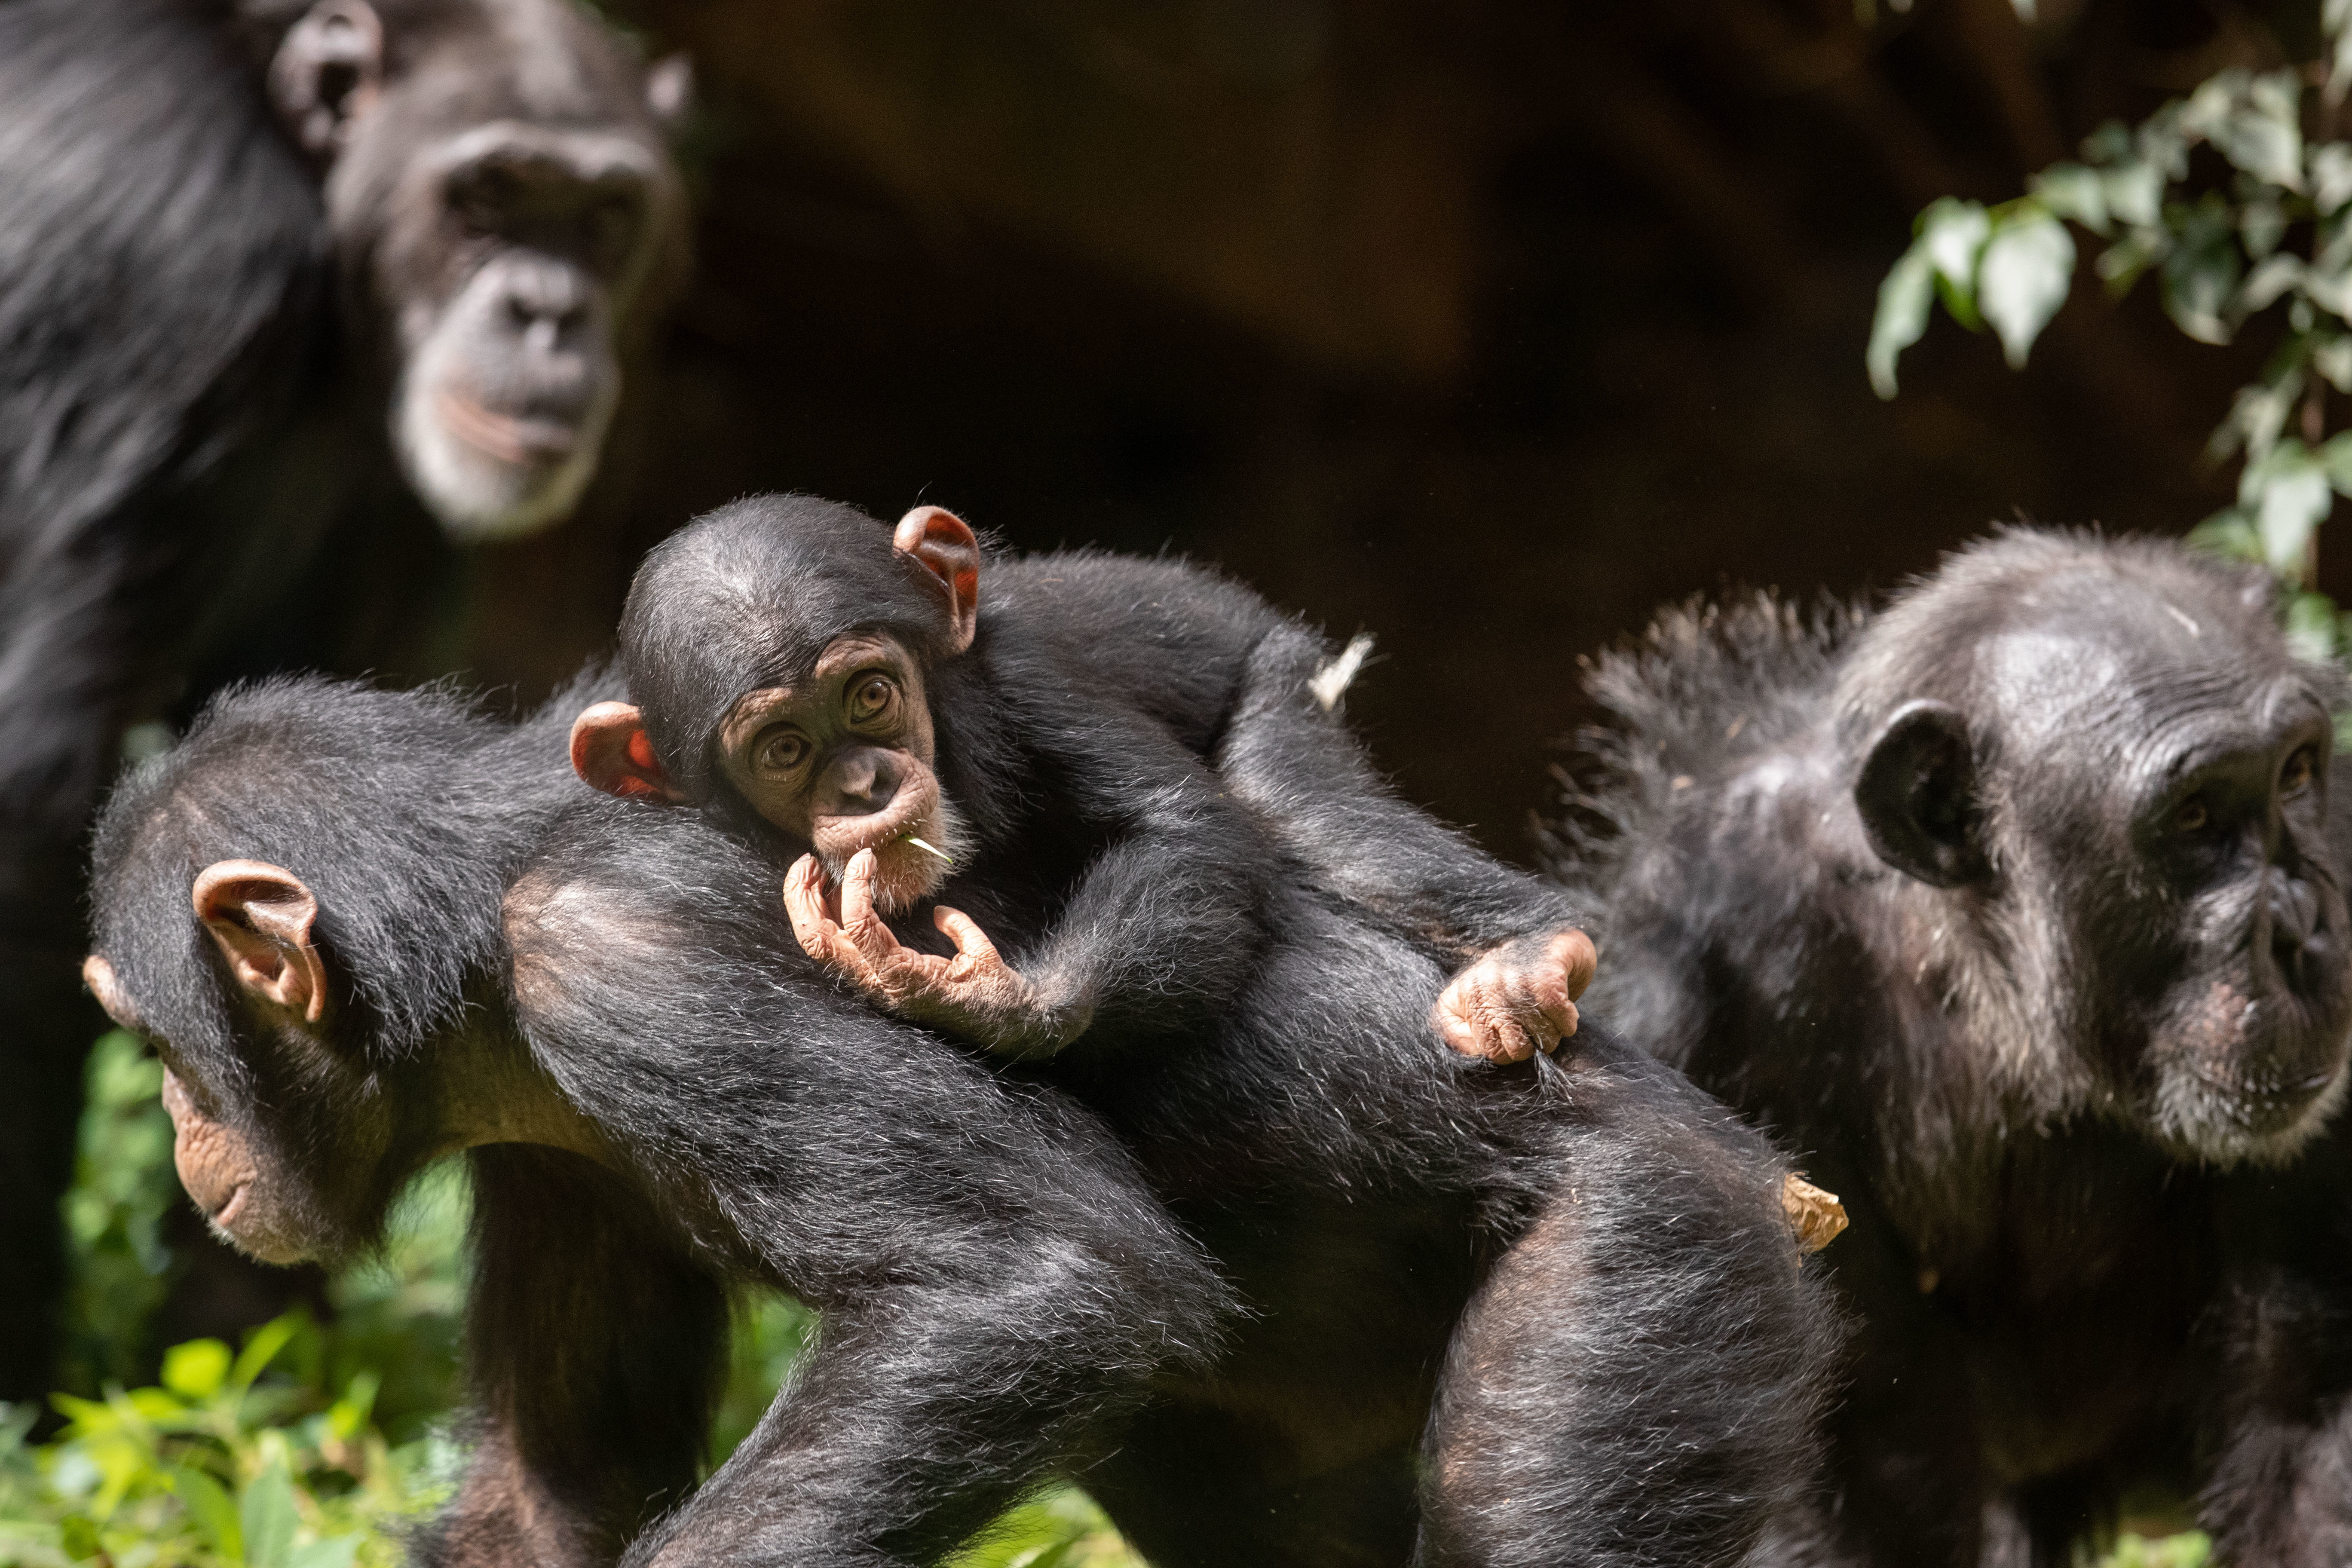 New arrival of two chimpanzees at Osnabrück Zoo